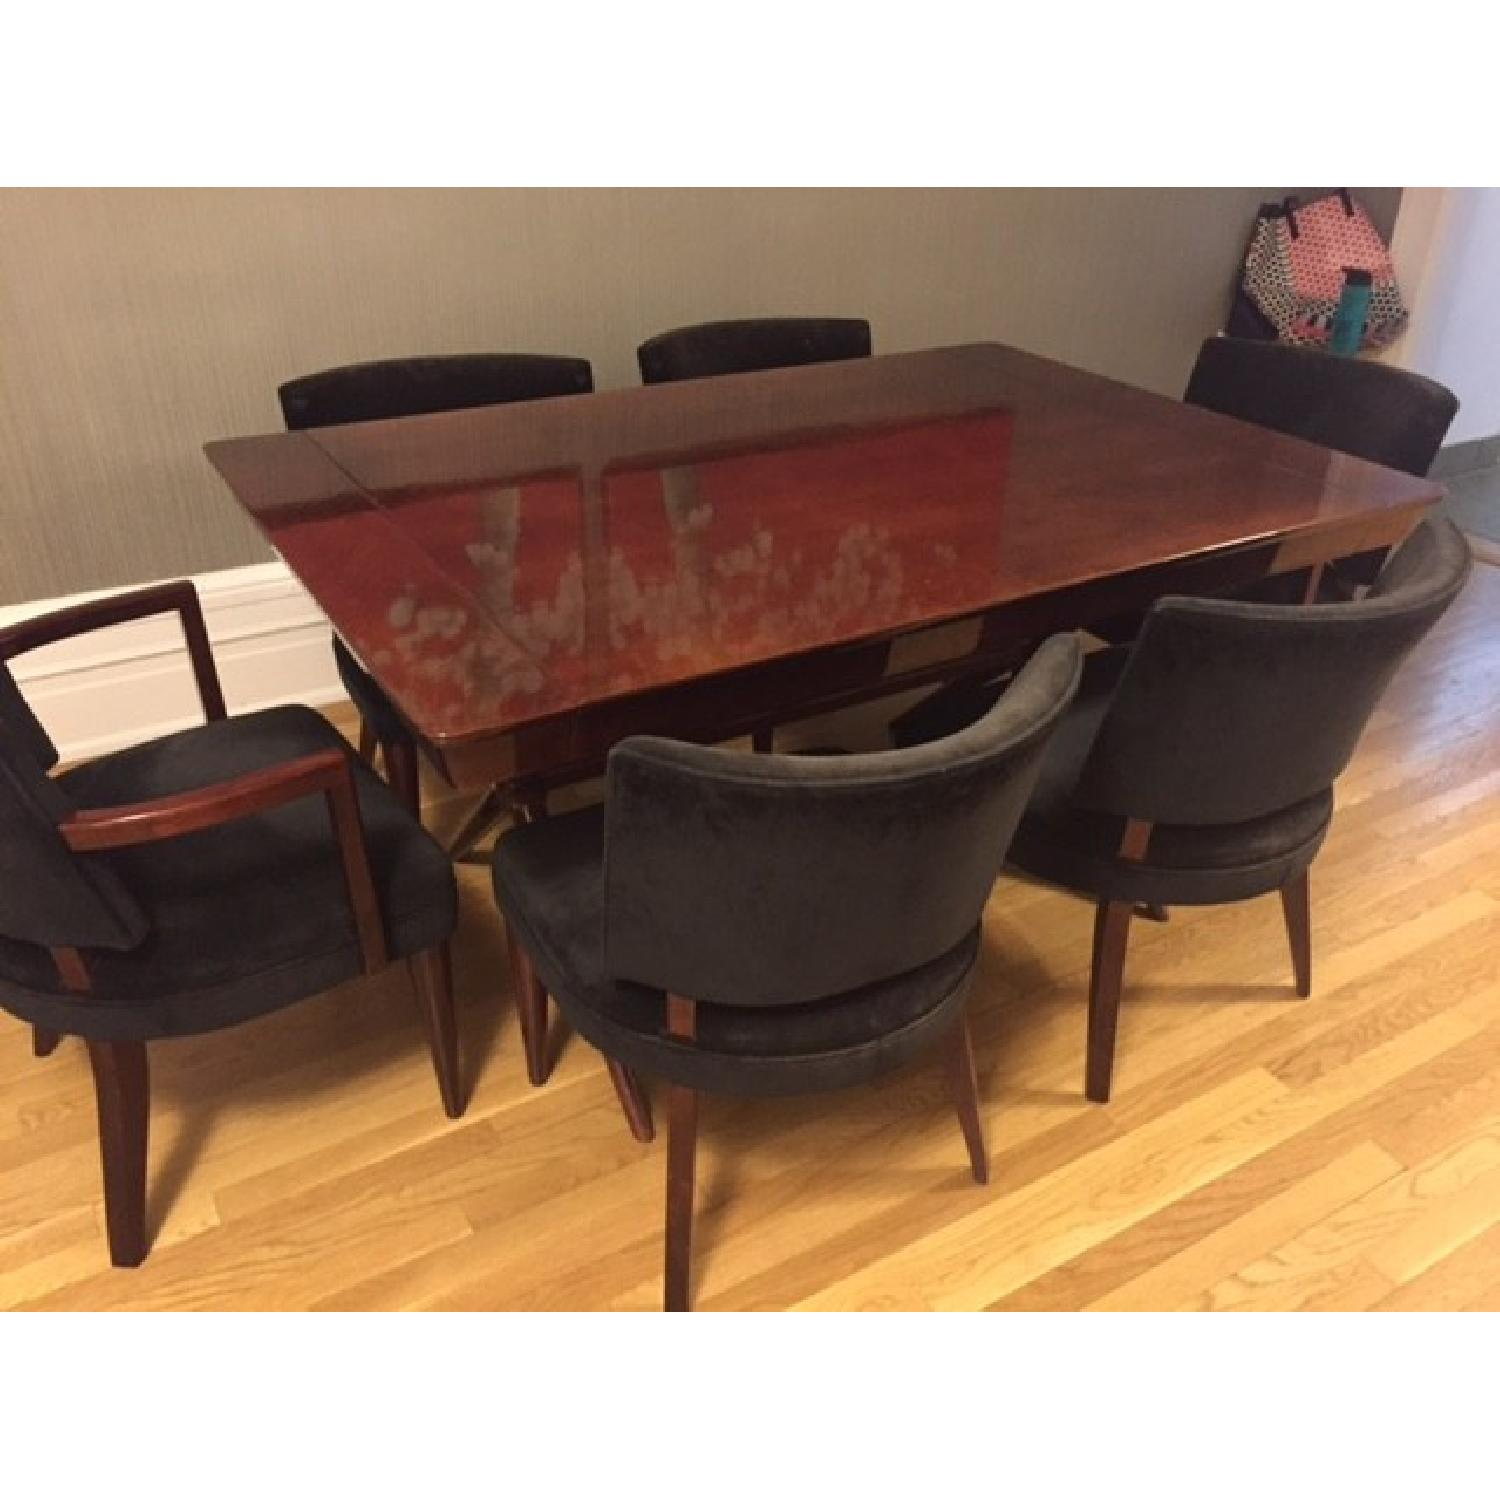 Depression Modern Art Deco Dining Room Table w/ 6 Chairs - image-1